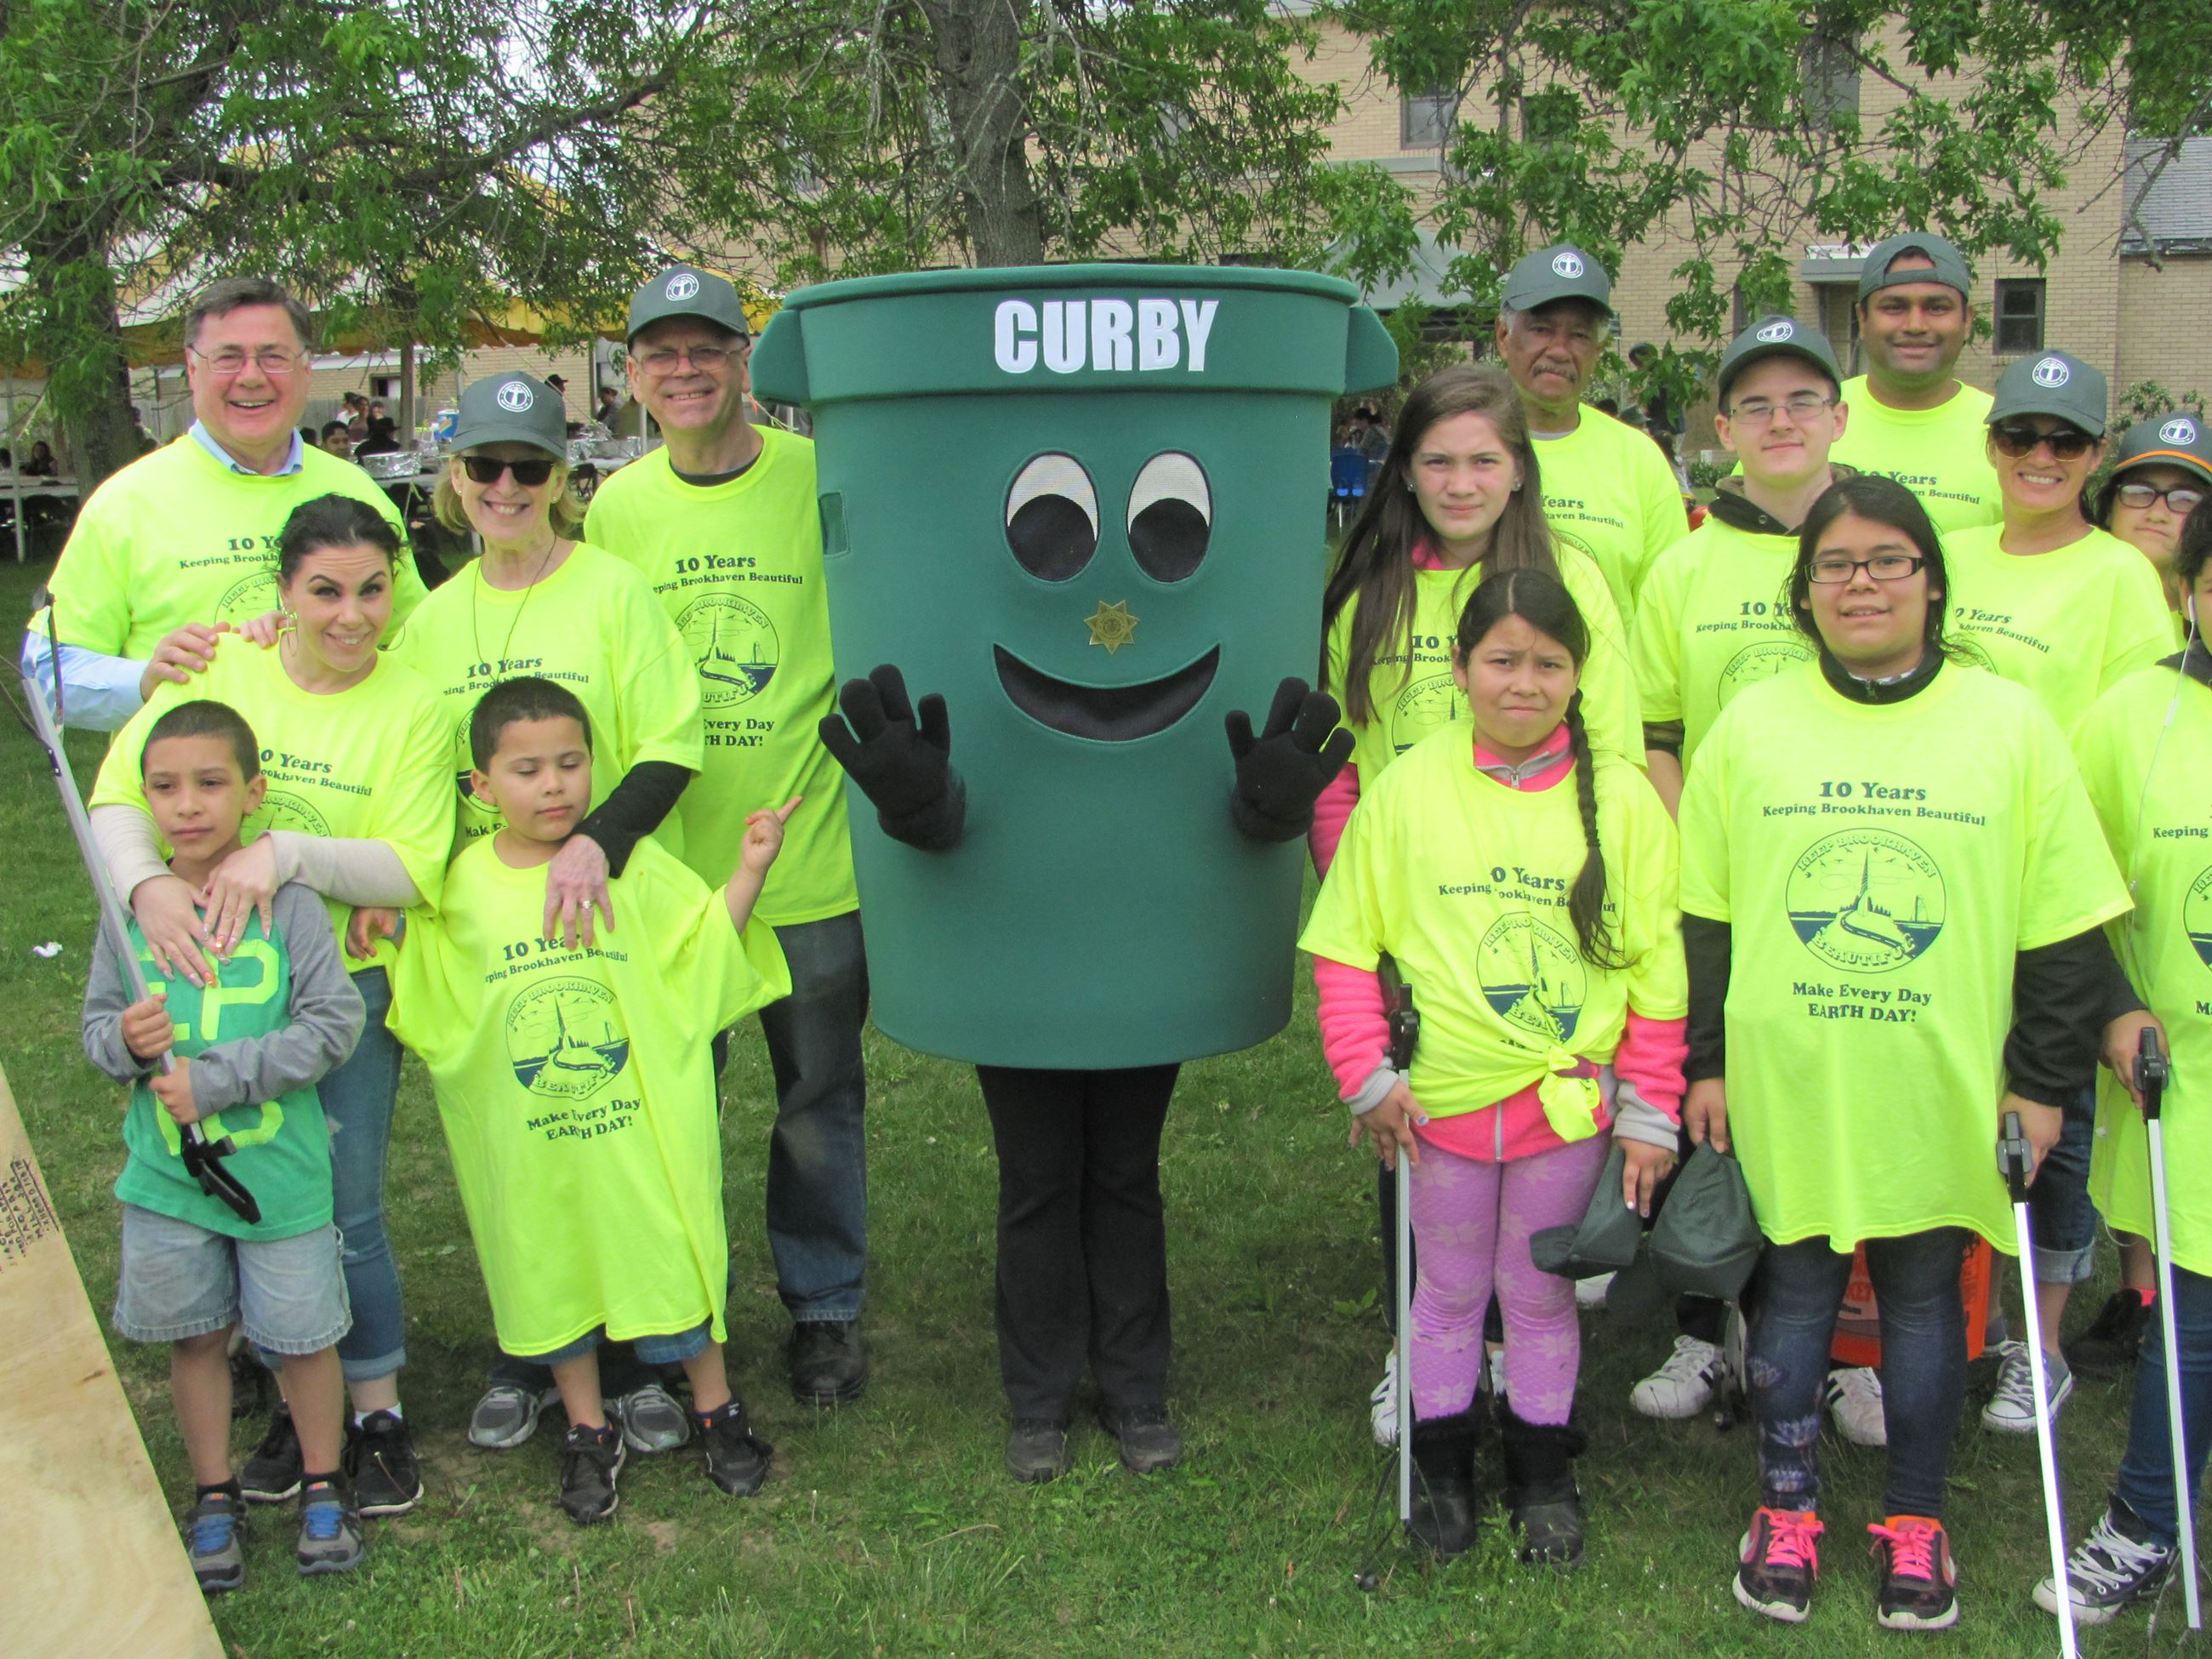 Group of adults and childern in yellow with recycling bin mascot